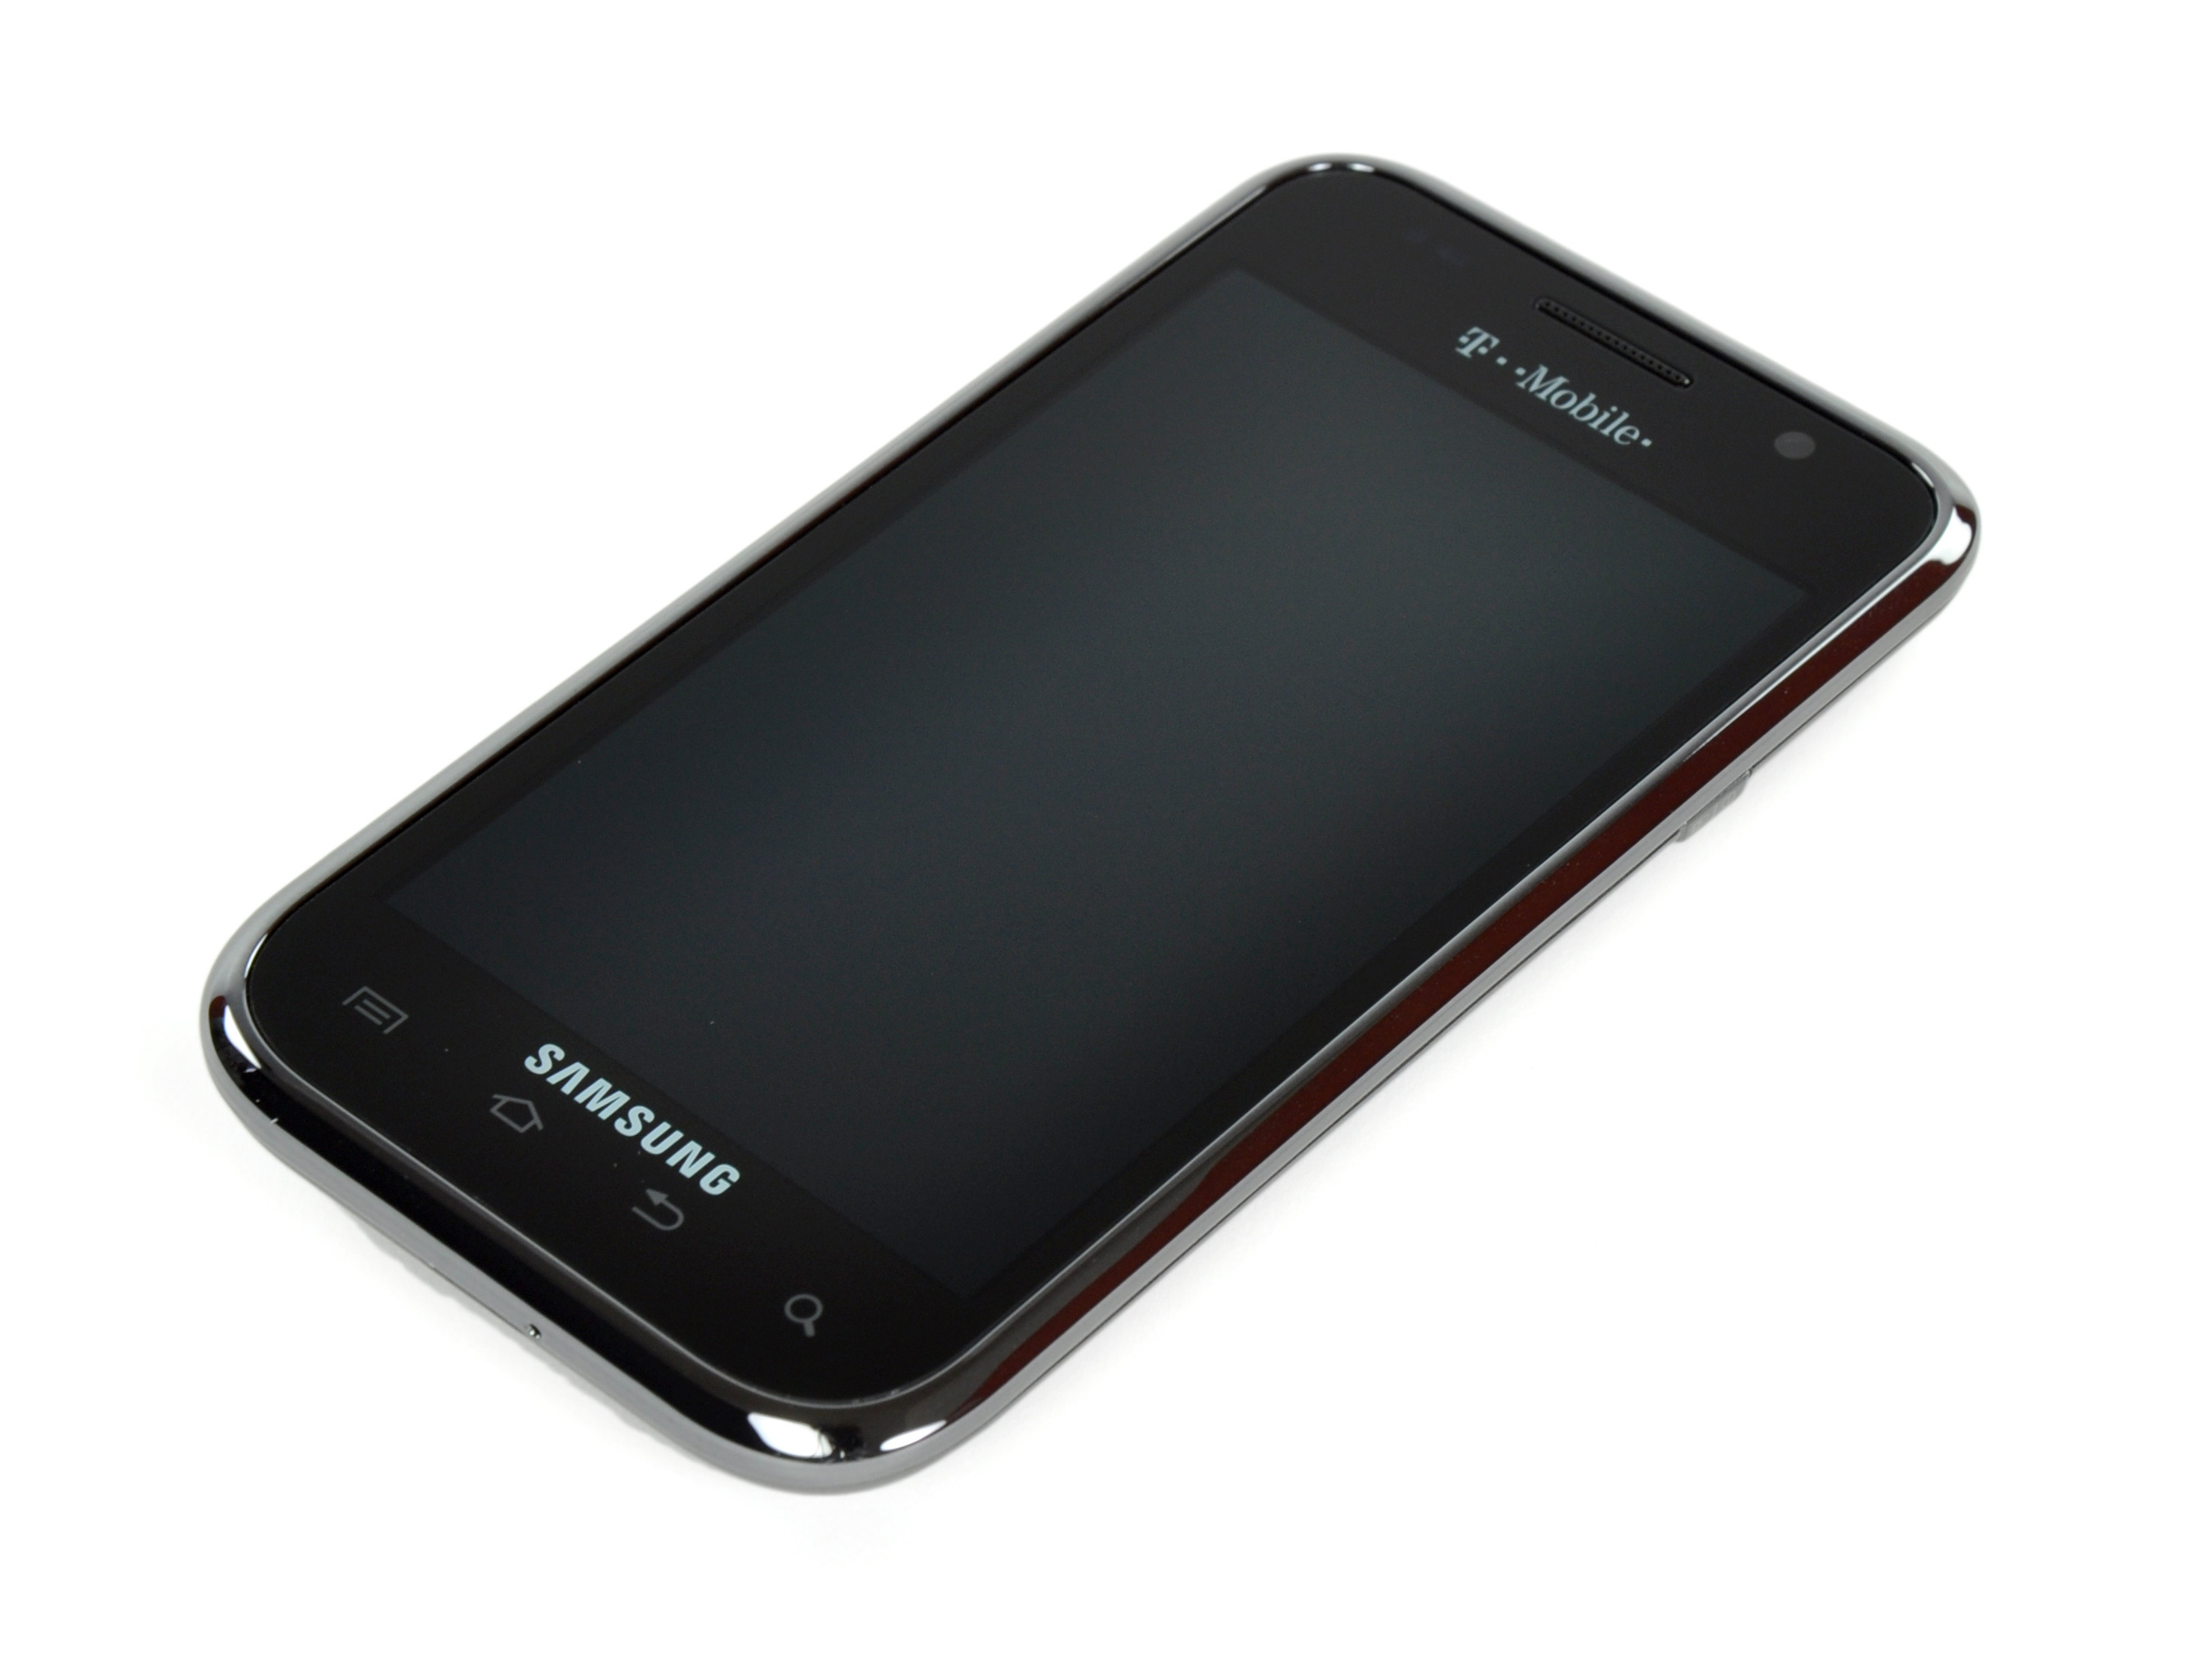 Screen broken on Samsung Galaxy S T959   Samsung Galaxy S 4G   iFixit